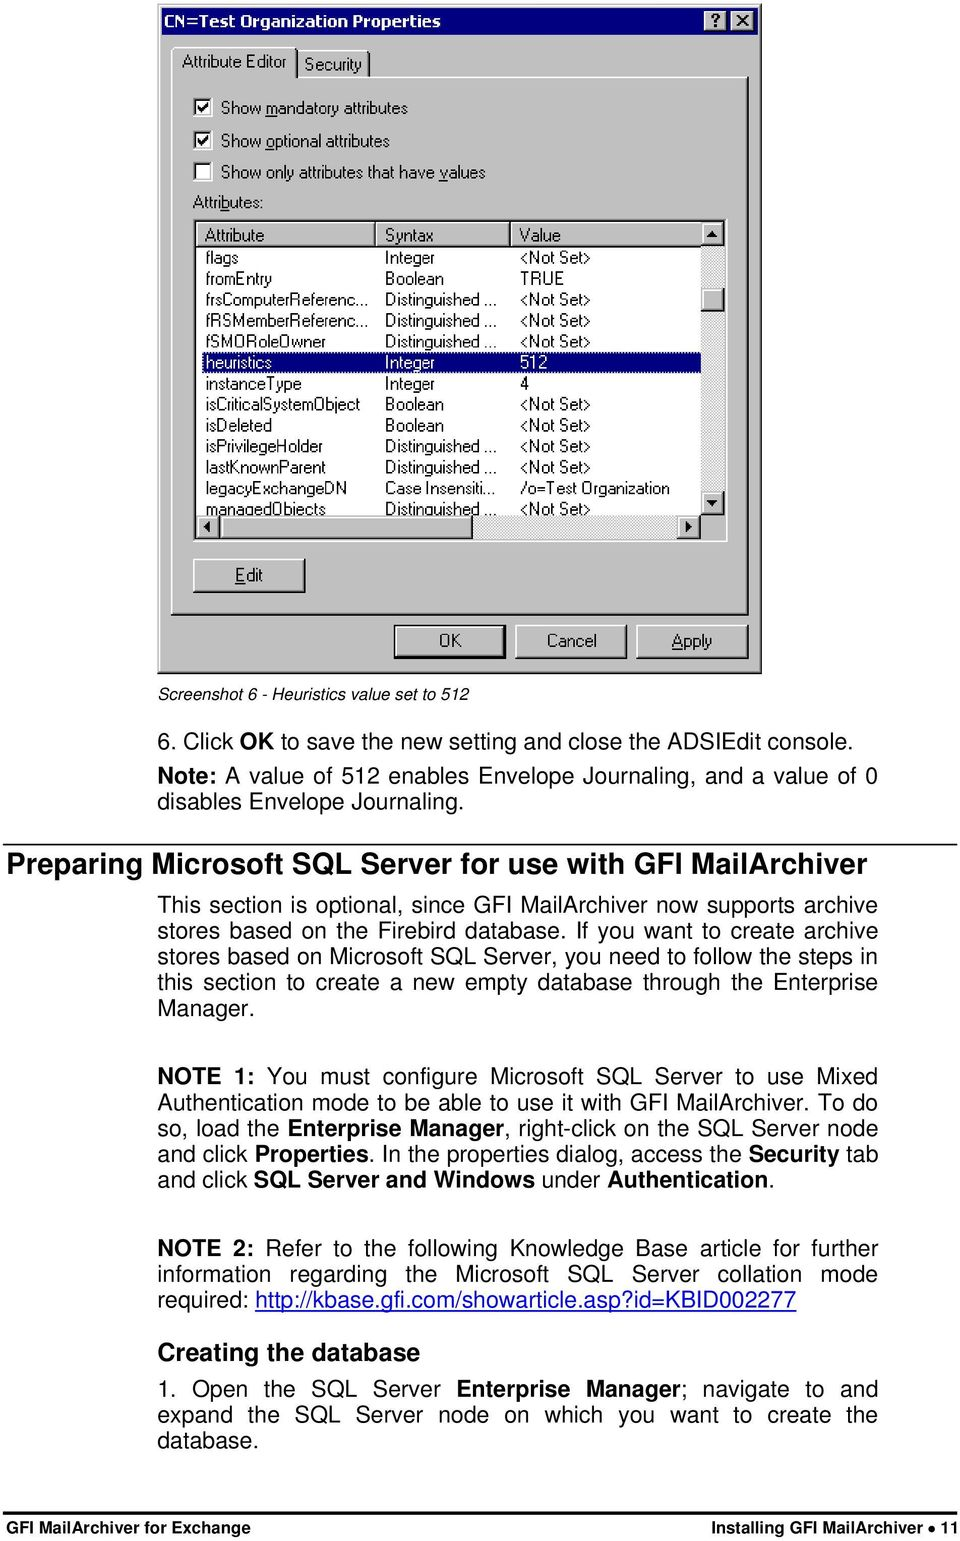 Preparing Microsoft SQL Server for use with GFI MailArchiver This section is optional, since GFI MailArchiver now supports archive stores based on the Firebird database.